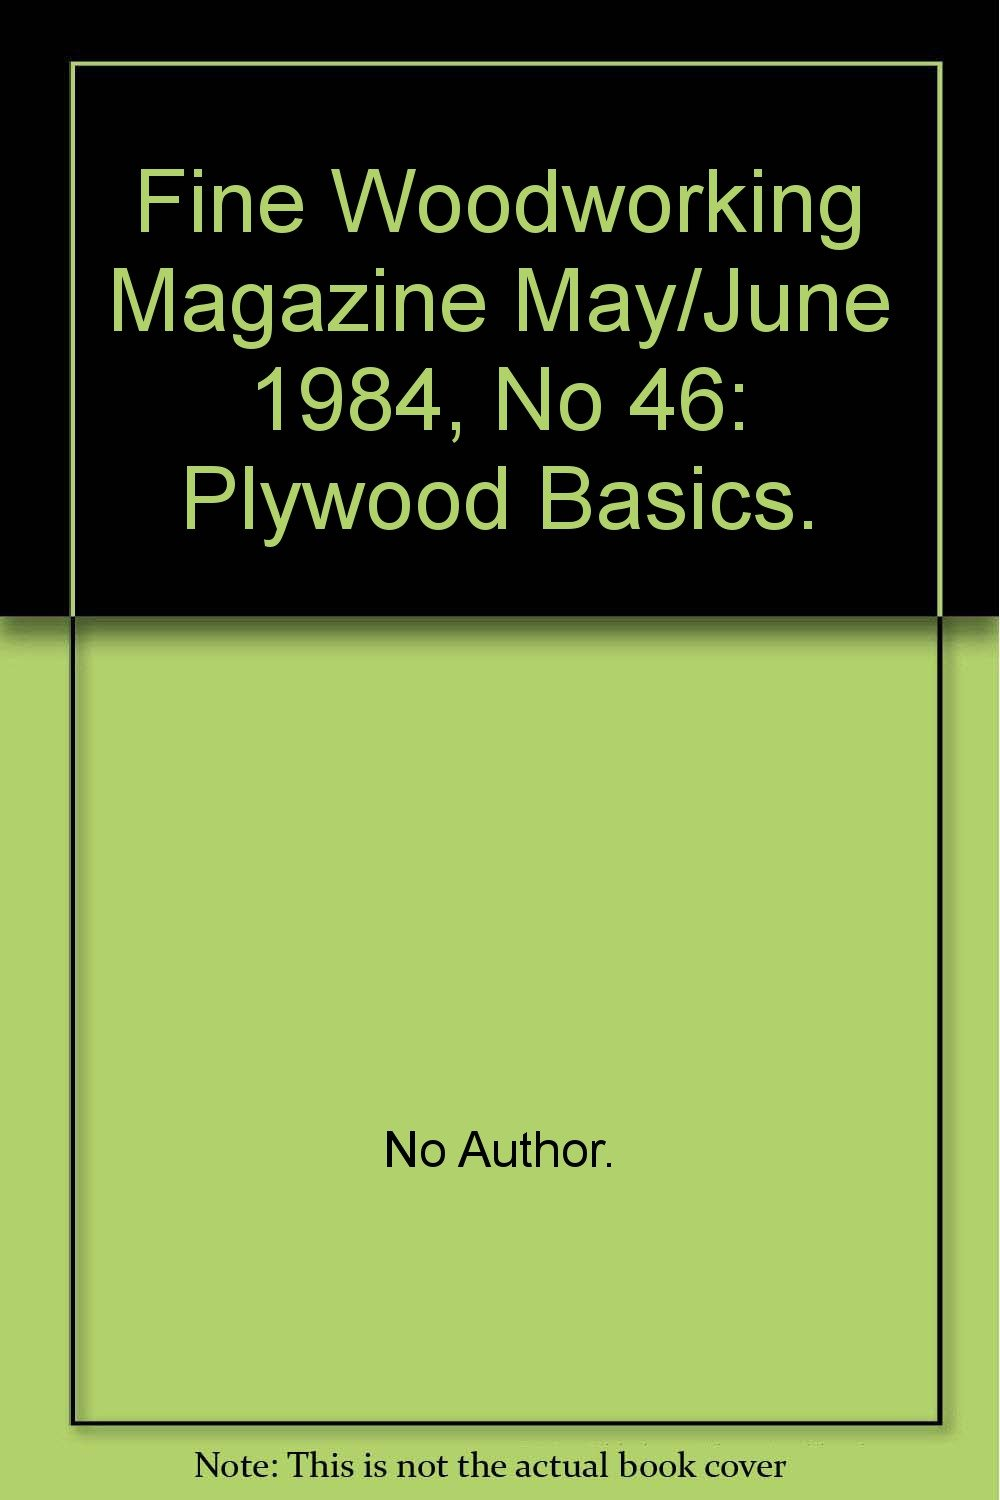 Fine Woodworking Magazine May/June 1984, No 46: Plywood Basics., Fine Woodworking